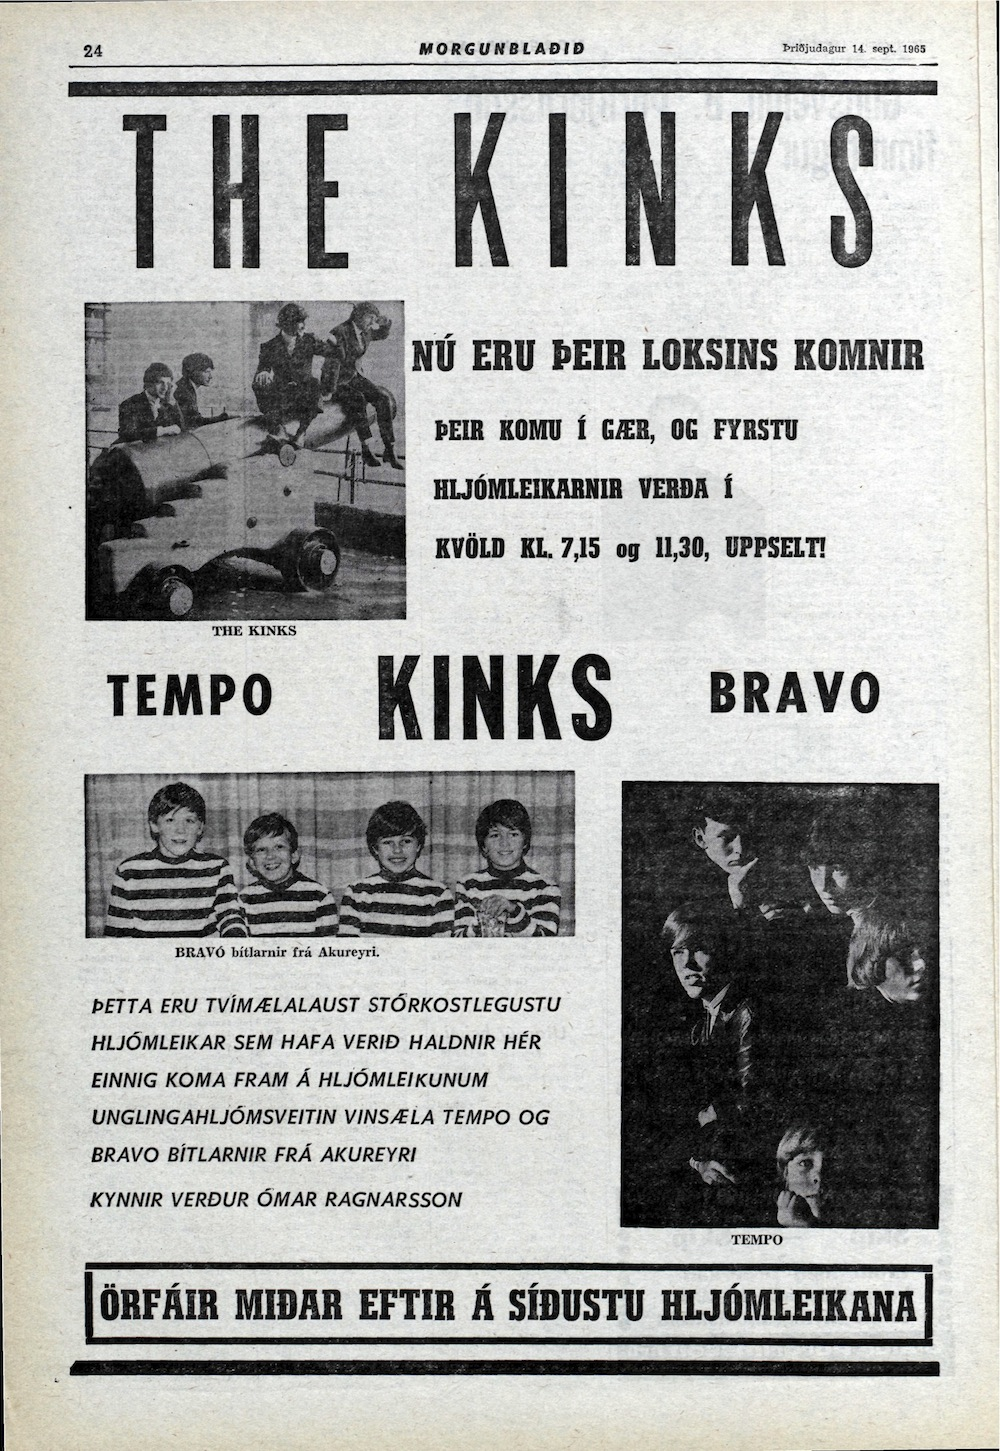 The-Kinks-Tempo-and-Bravo